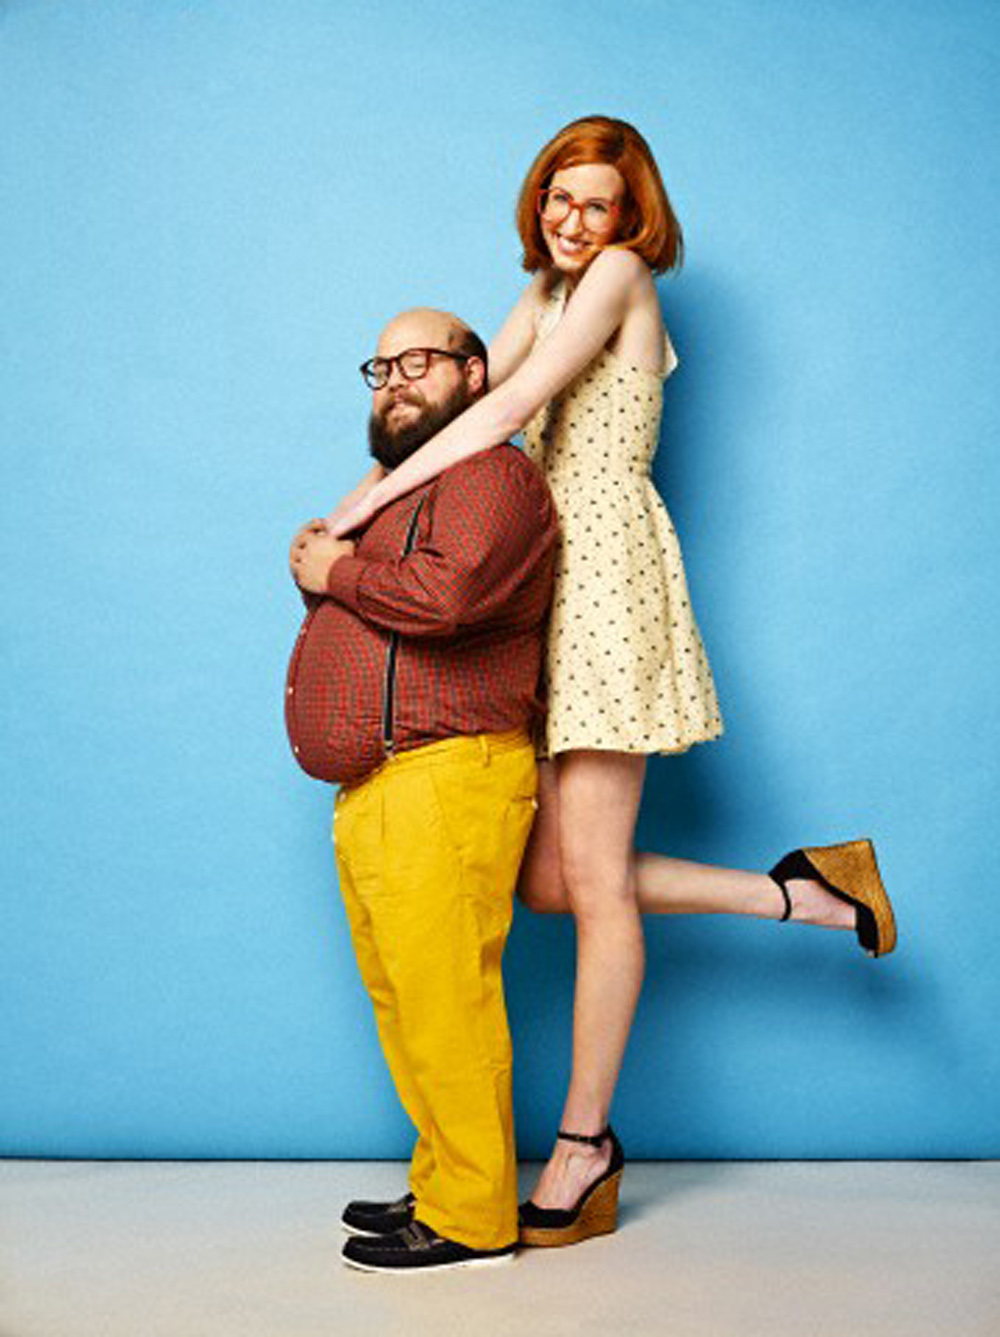 8 Simple Rules for Getting a Date with a Tall Girl  The